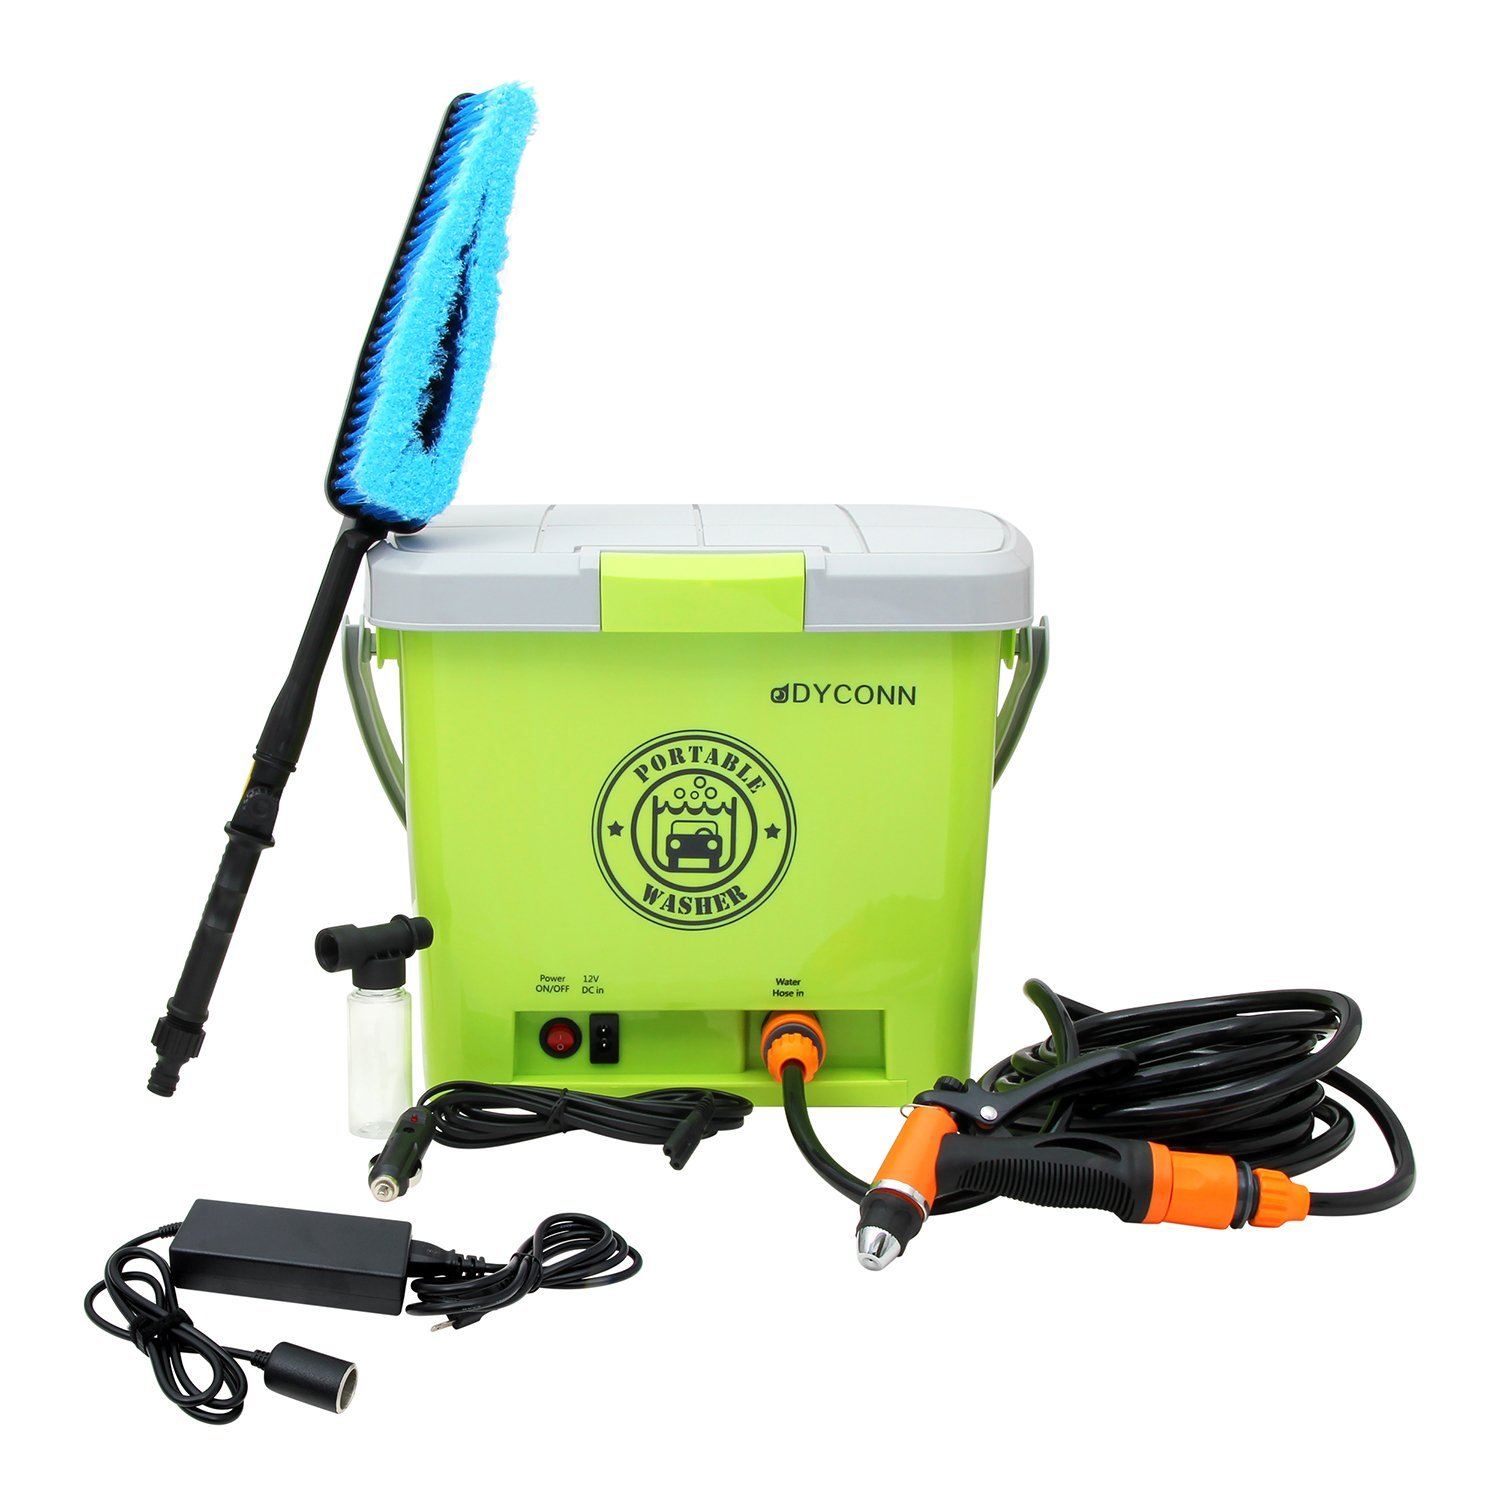 Dyconn Faucet HPPWS-12V Portable Pressure Washer